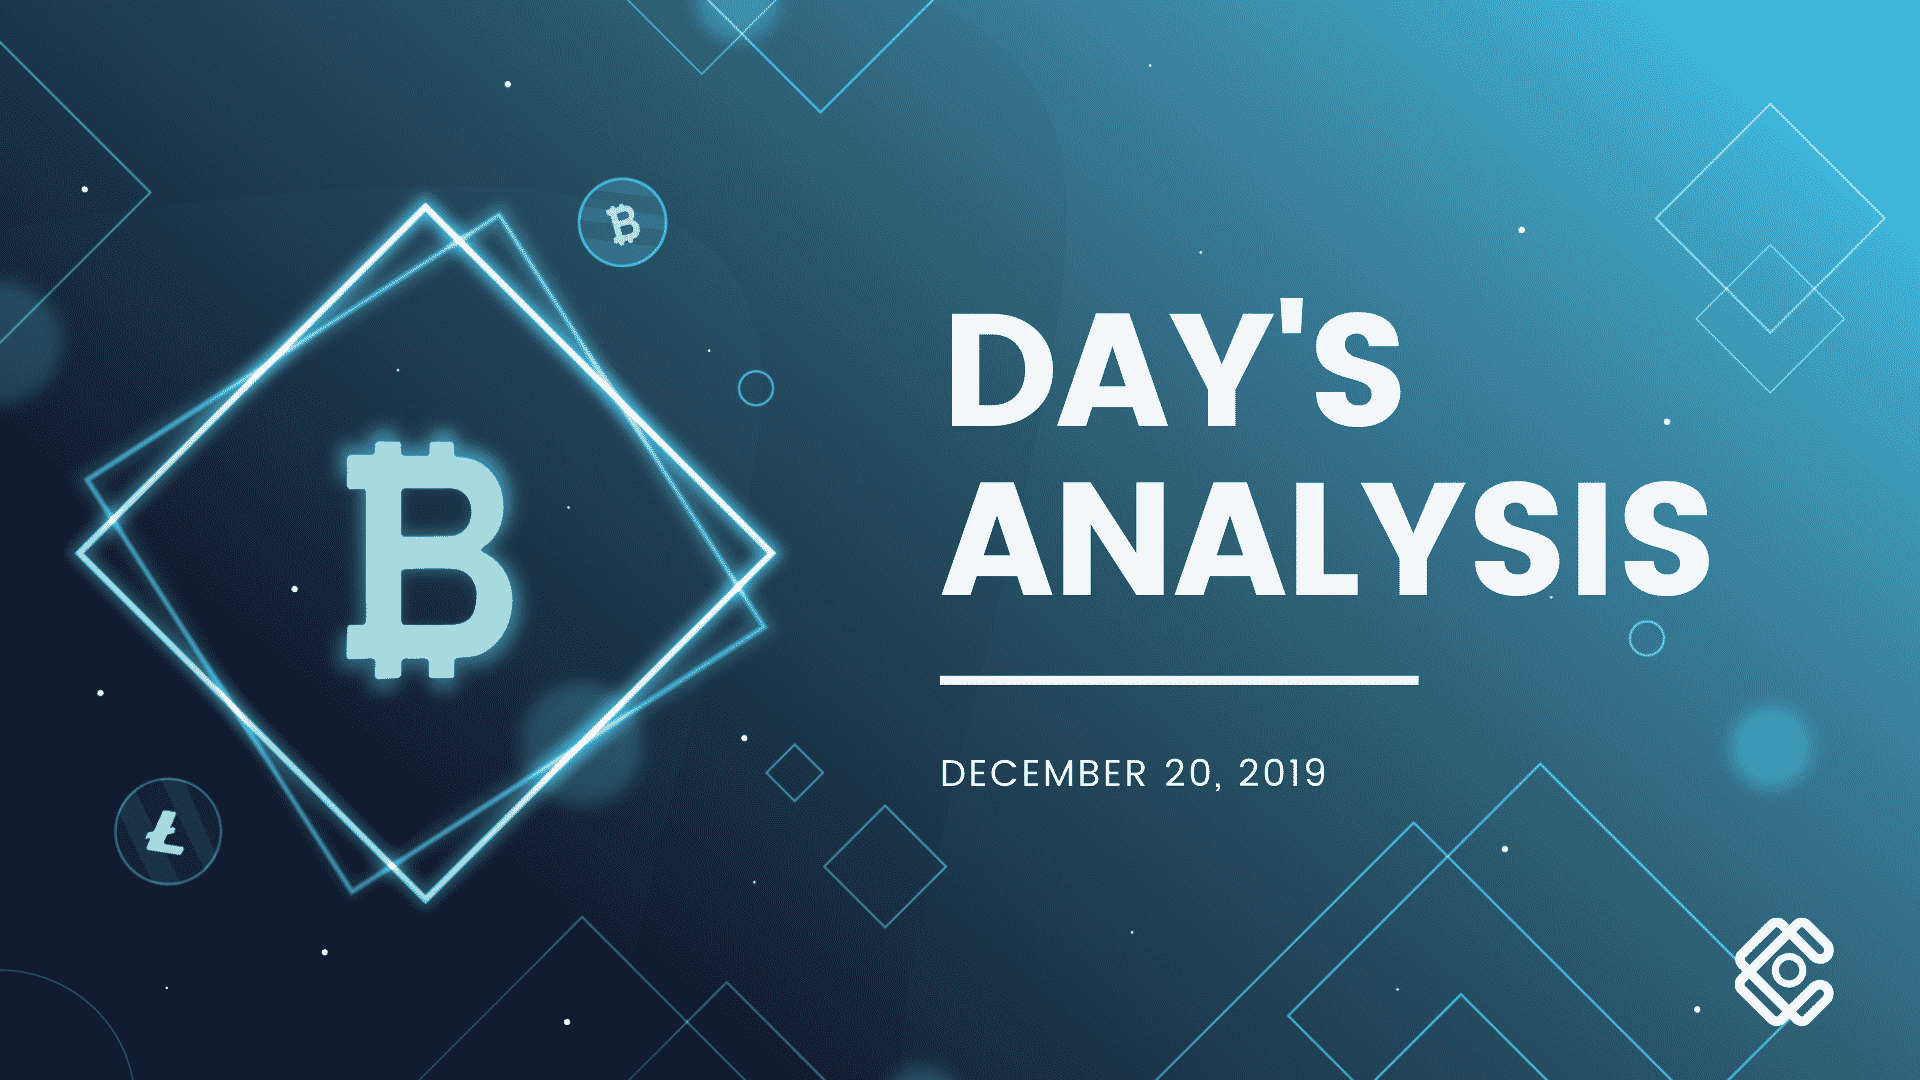 Market Analysis of December 20, 2019